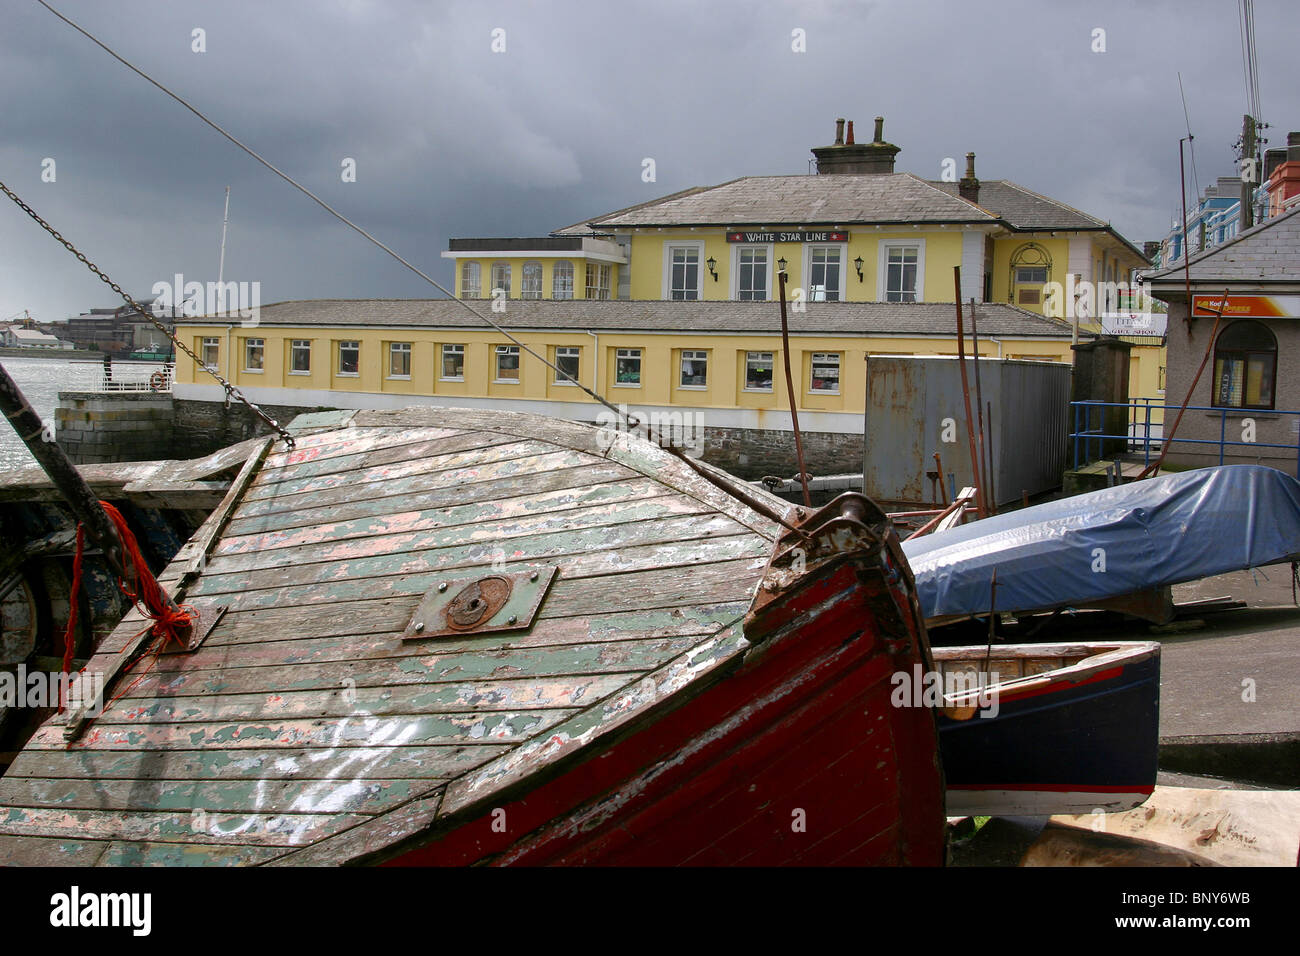 Ireland, Co Cork, Cobh, Titanic Bar & Restaurant in former White Star Line offices - Stock Image